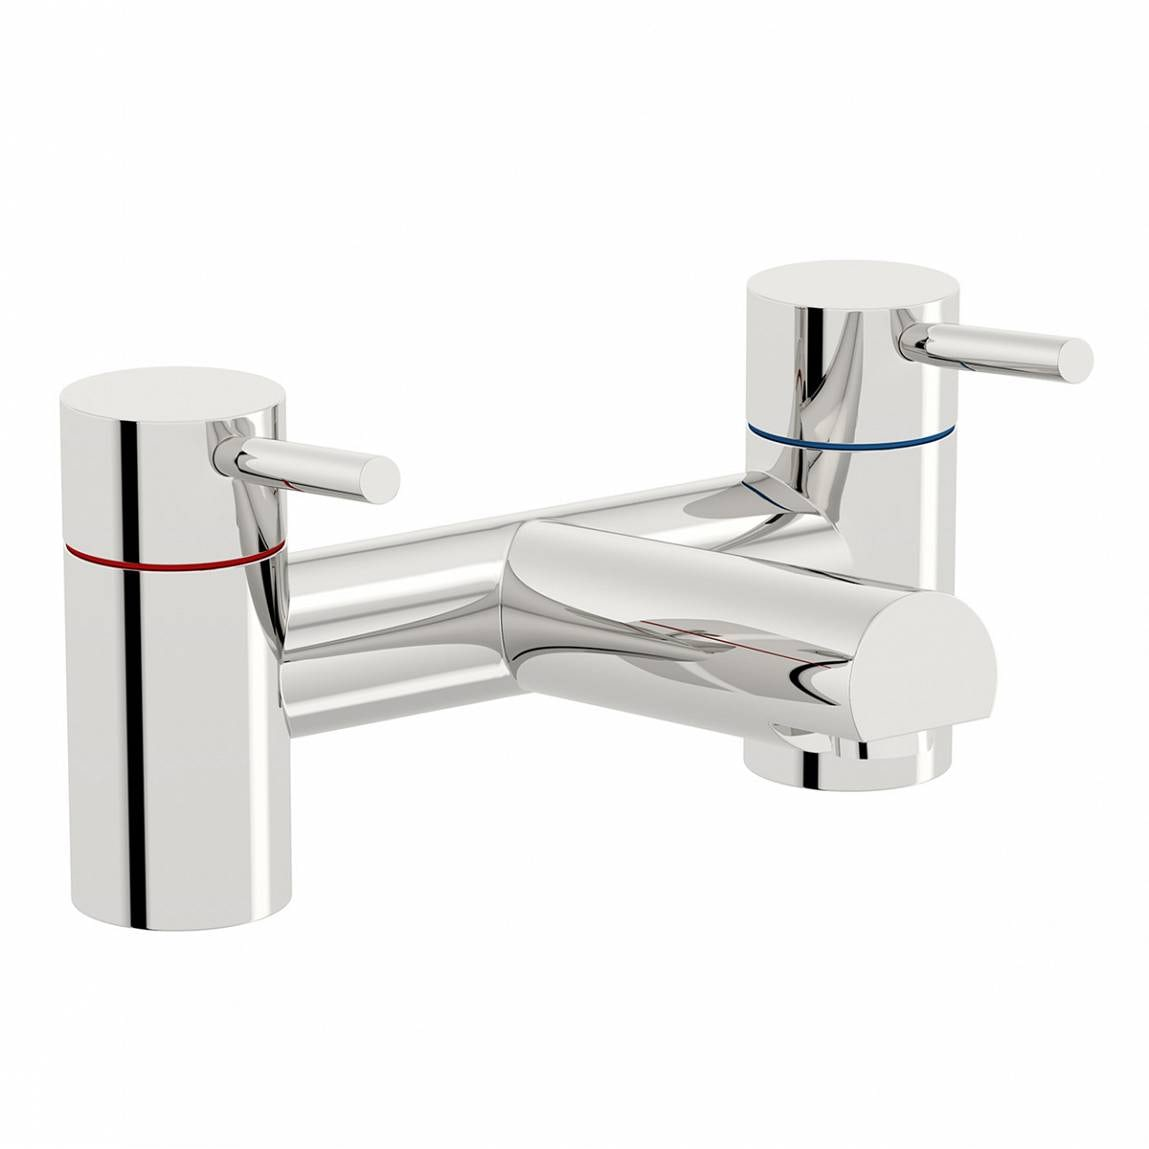 Orchard Wharfe bath mixer tap offer pack